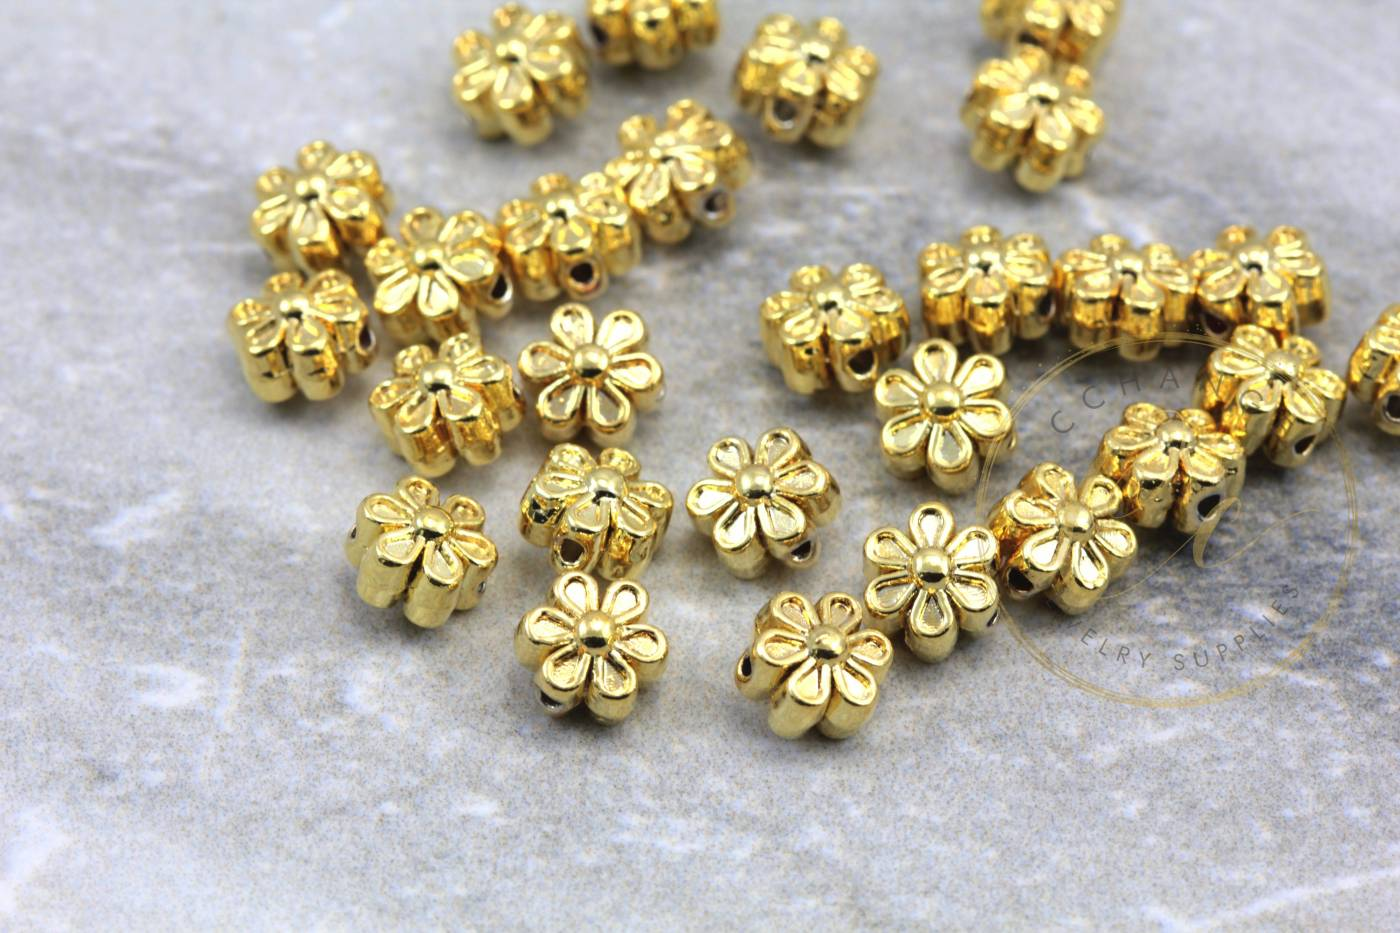 jewelry-gold-metal-floral-beads.jpg